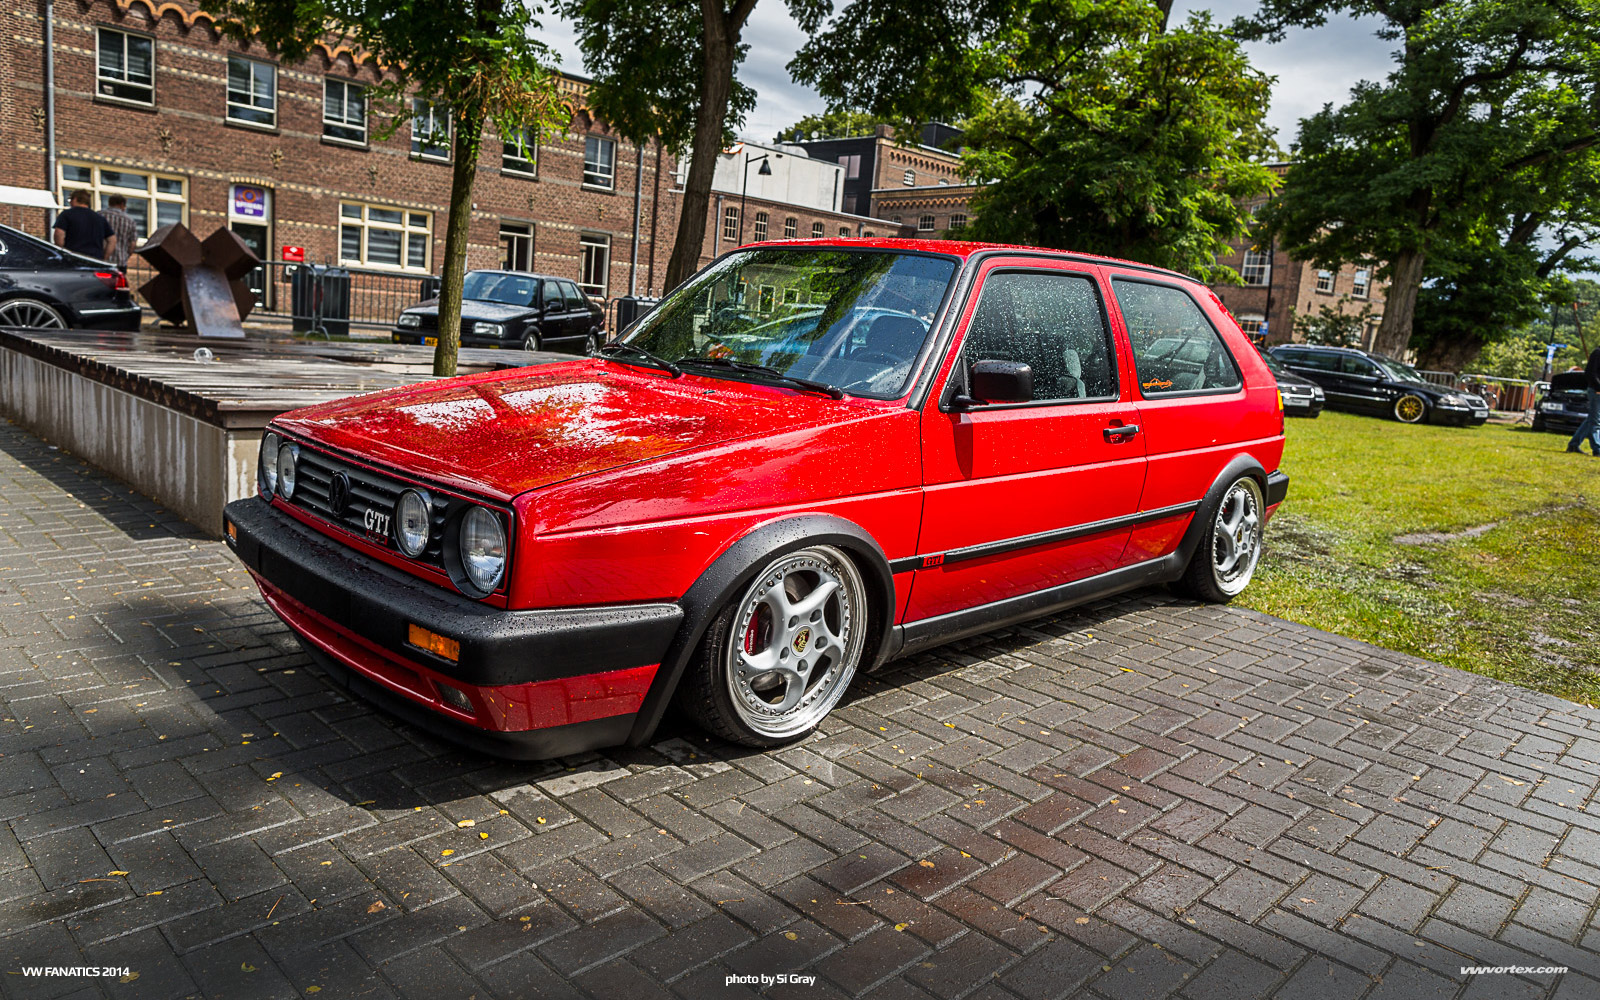 VWFanatics-2014-Si-Gray-476